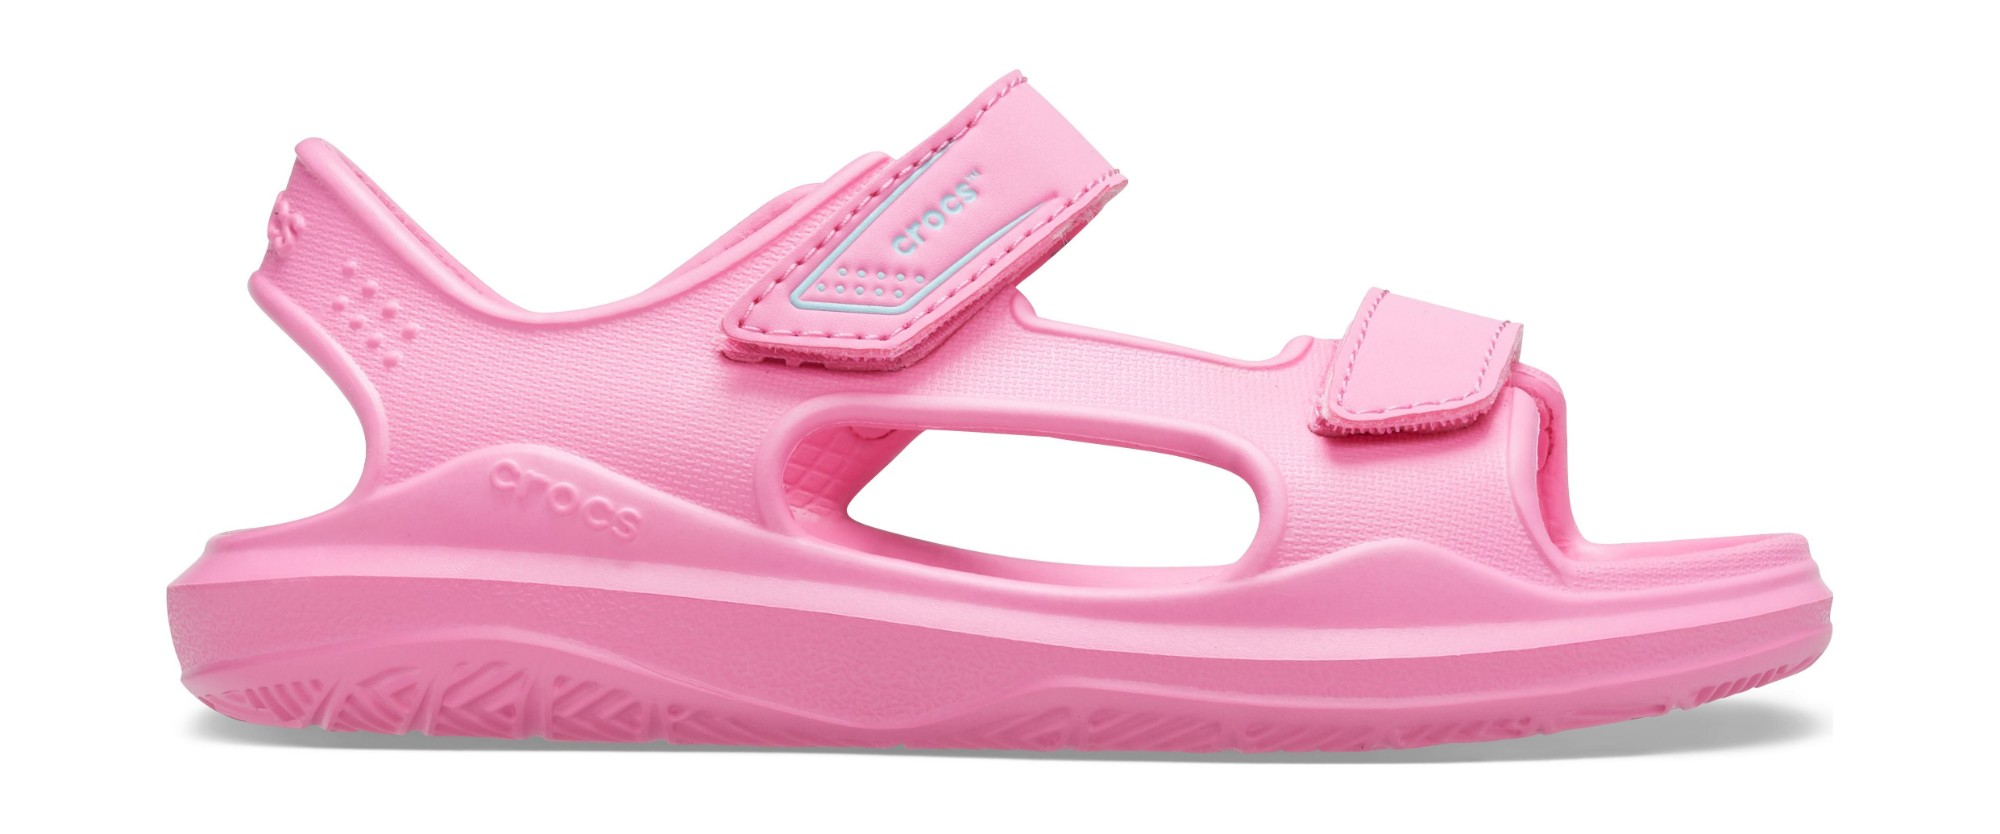 Crocs™ Swiftwater Expedition Sandal Kids Pink Lemonade/Pink Lemonade 36,5